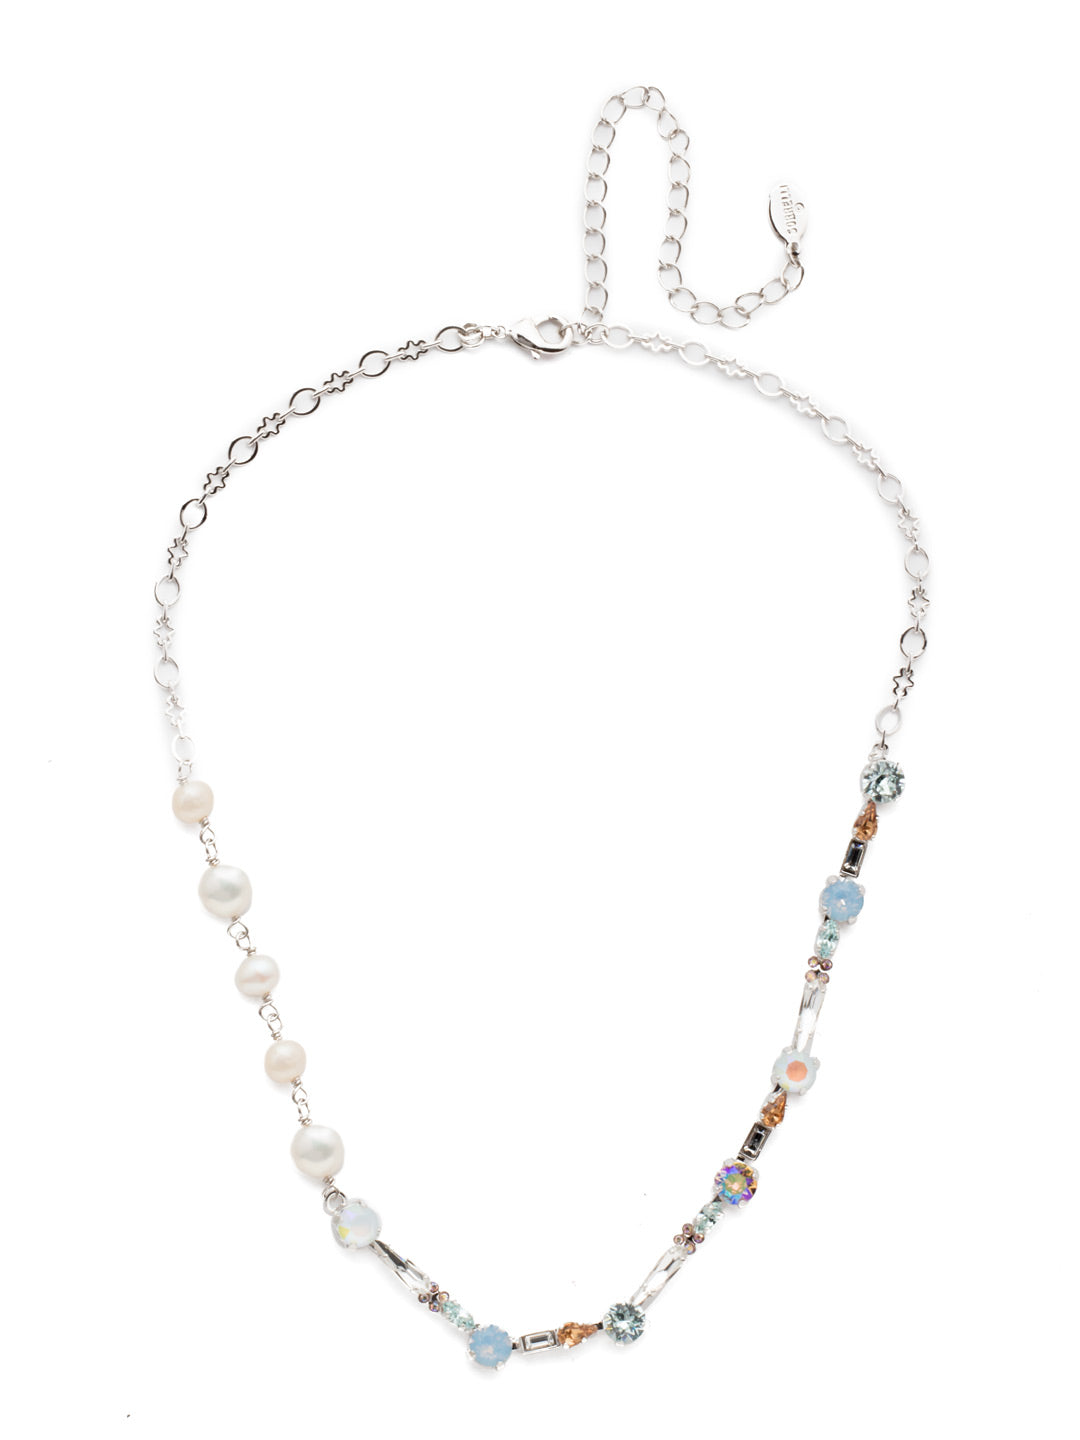 Oleana Tennis Necklace - NES18RHNTB